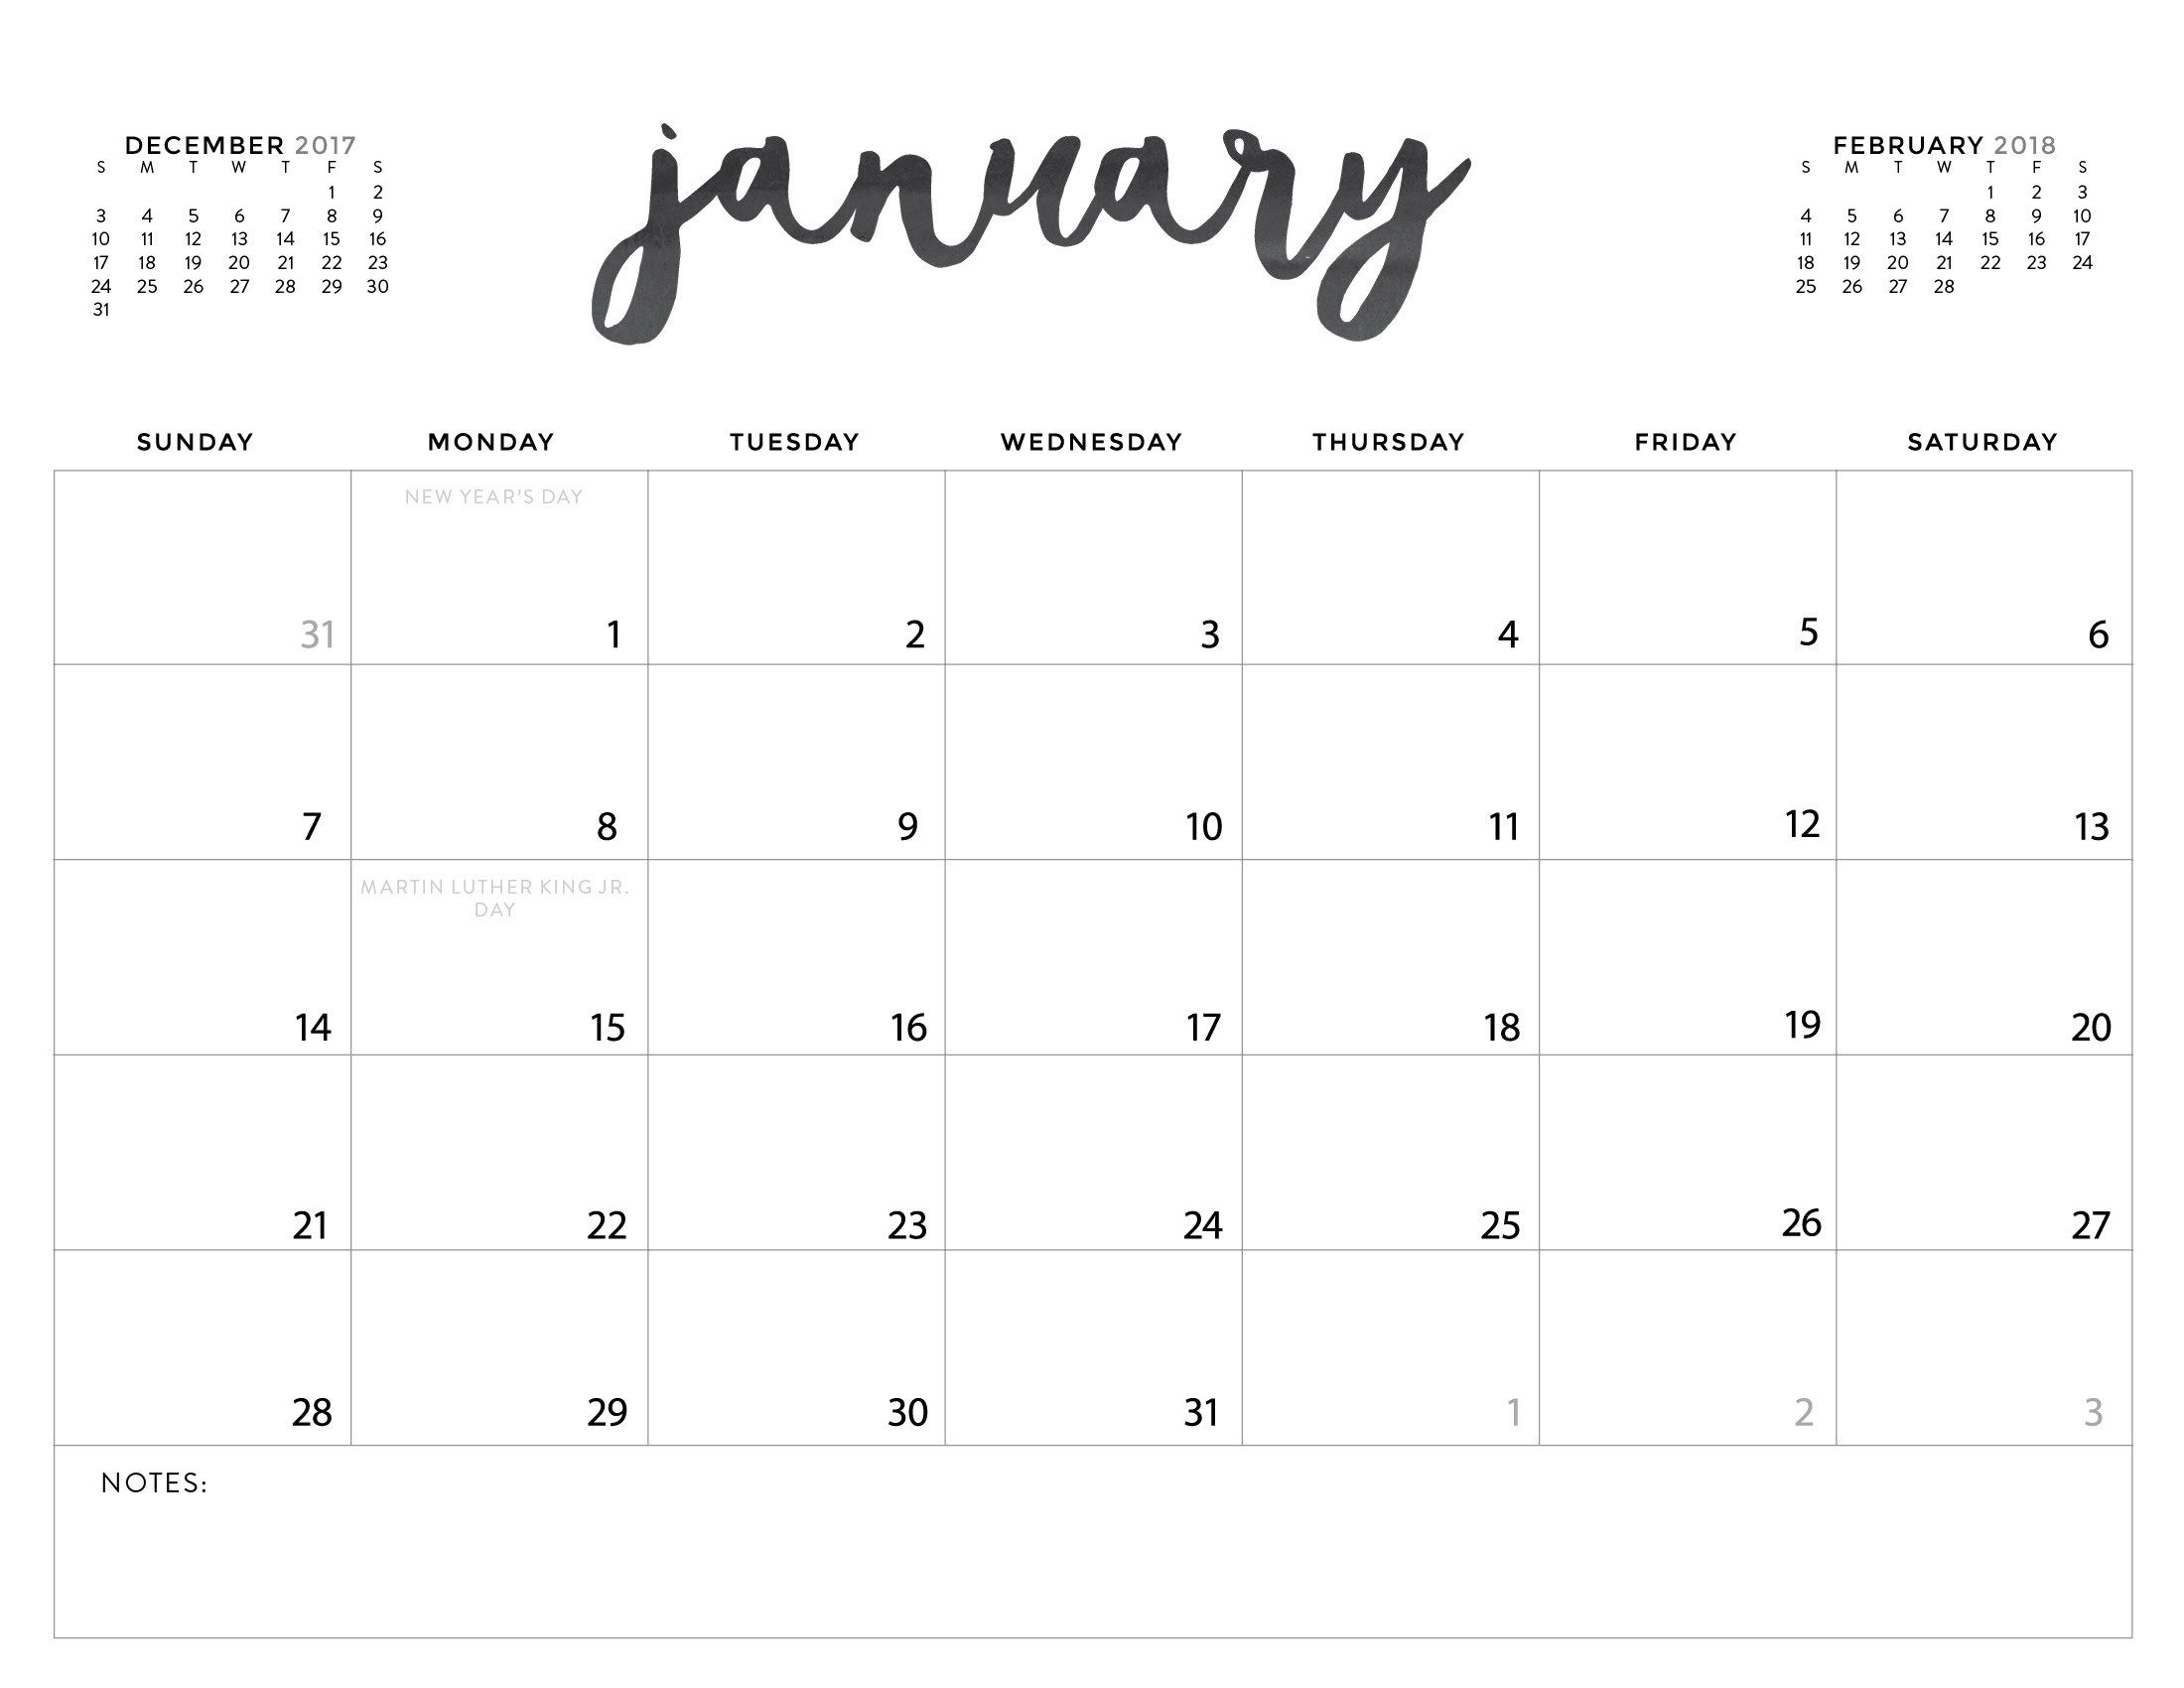 photograph regarding Printable Calendars Free known as Down load your Absolutely free 2018 Printable Calendars presently! There are